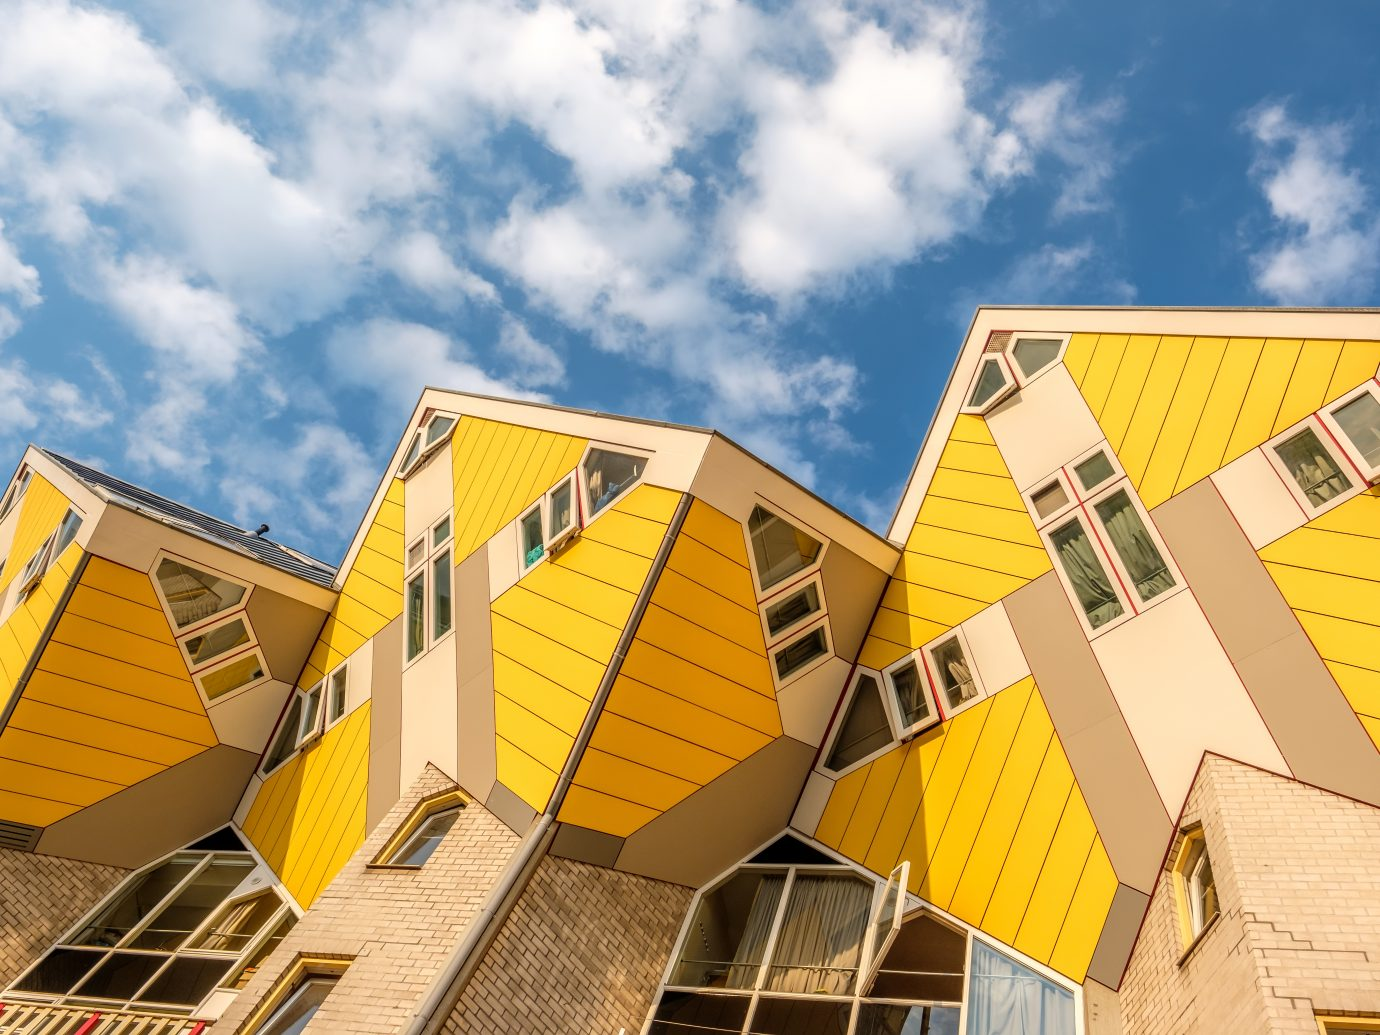 Cube houses in Rotterdam.